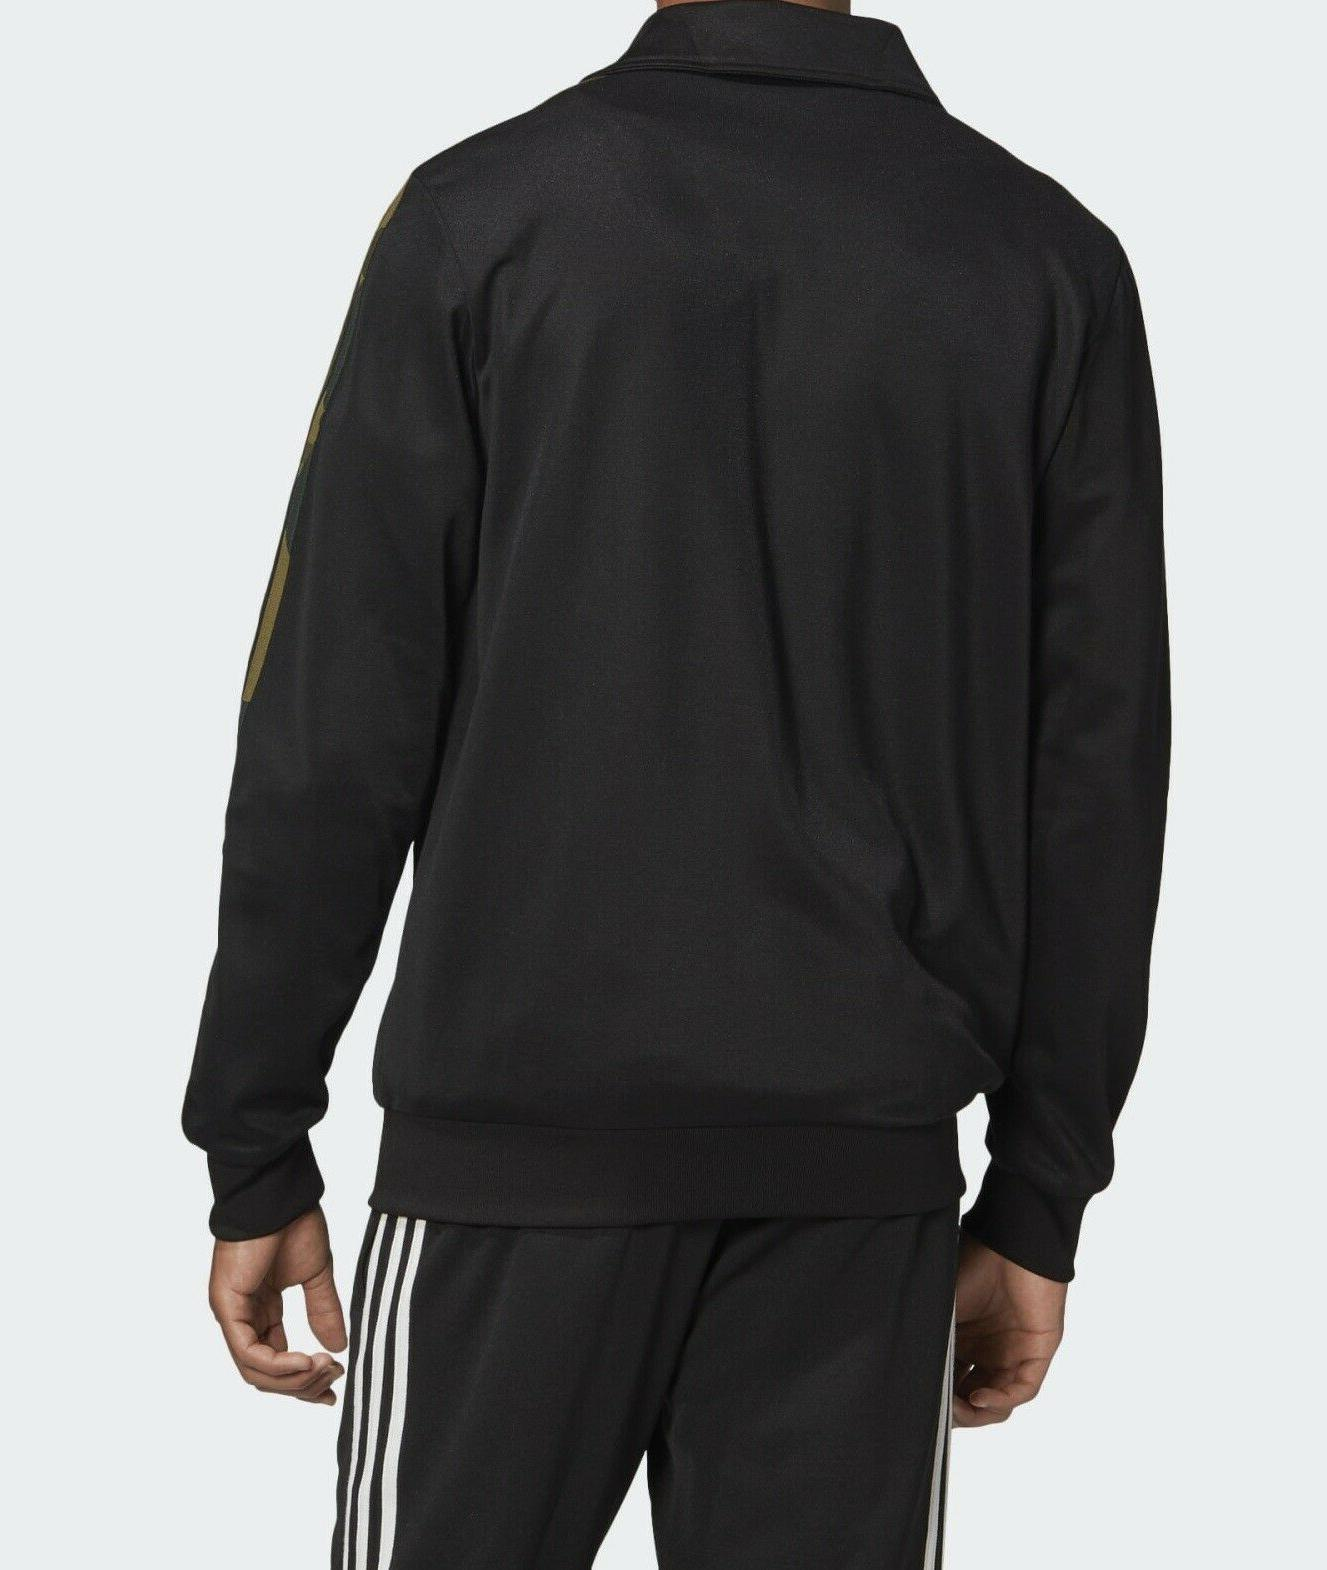 Adidas Originals Track Jacket Size